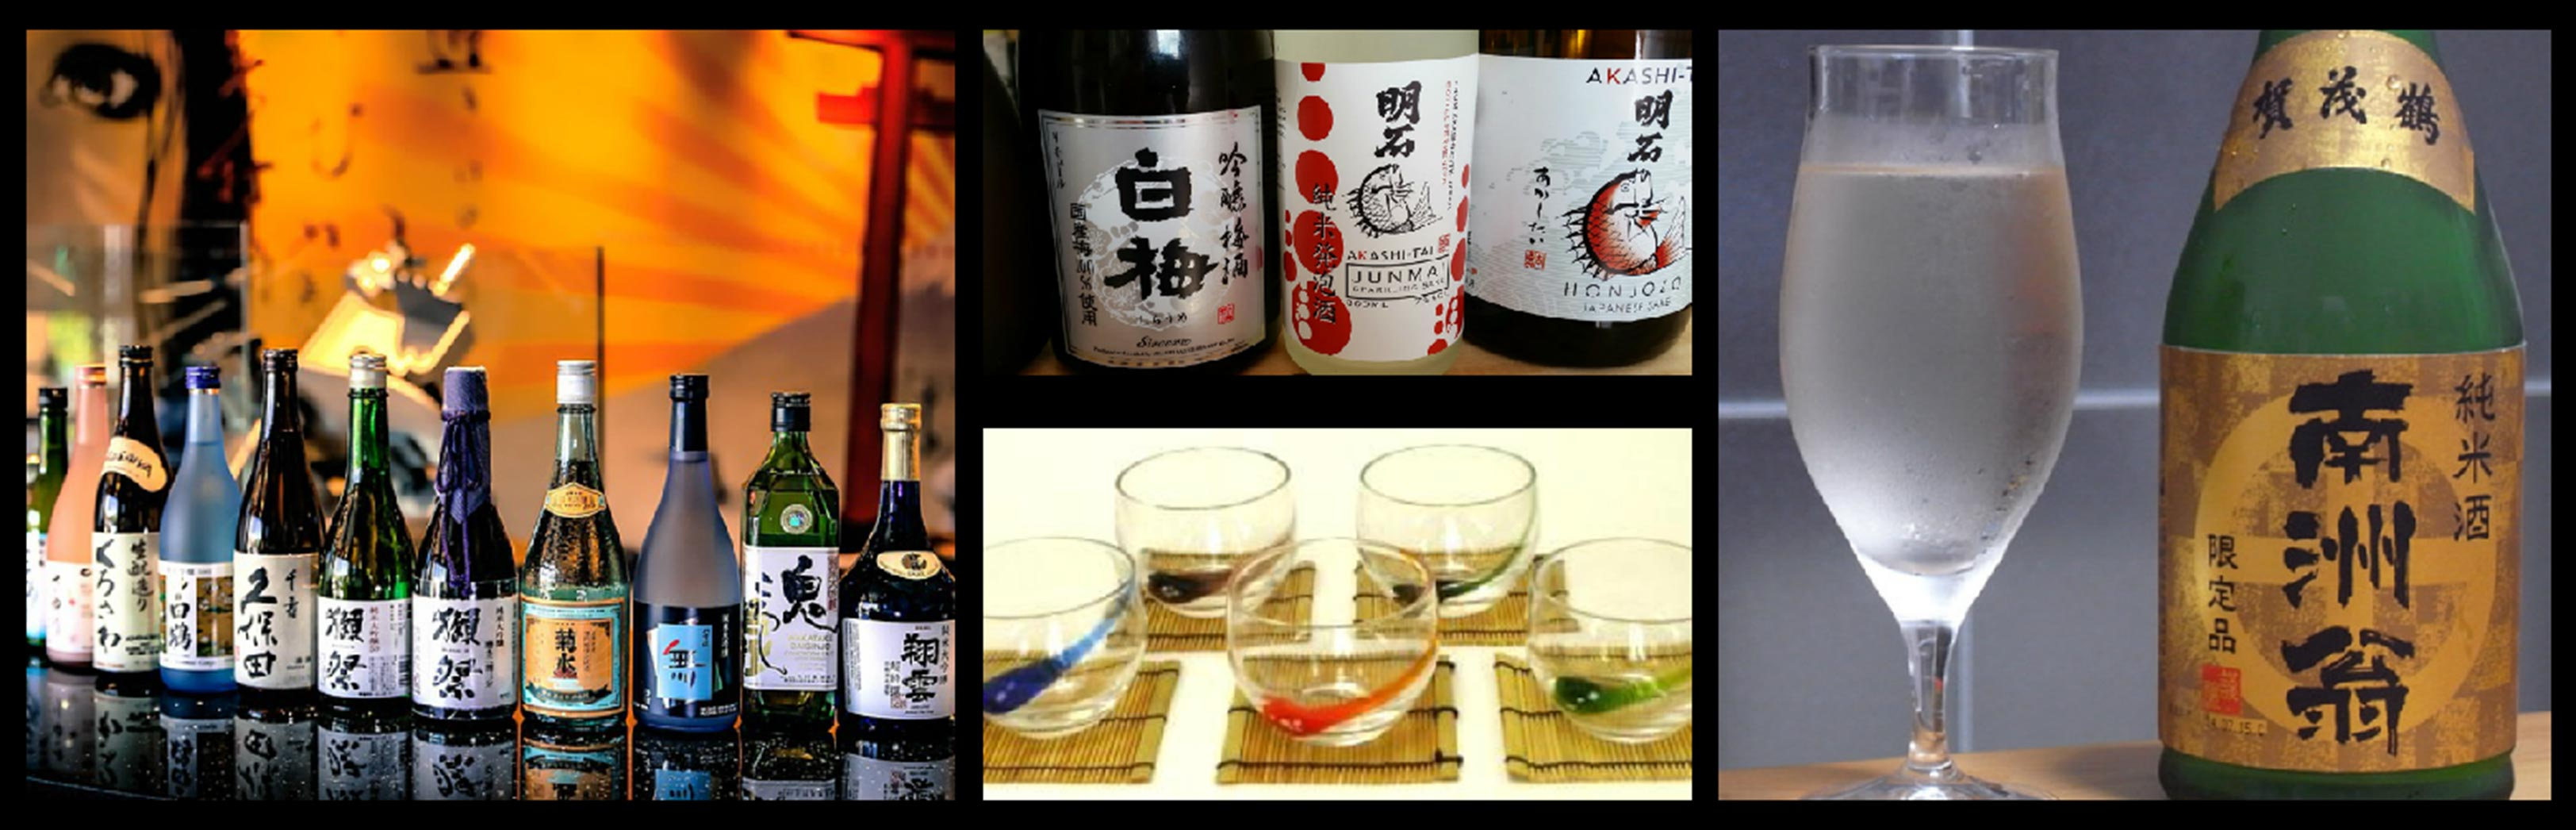 Chicago Sake Wine Festival Picture Collage